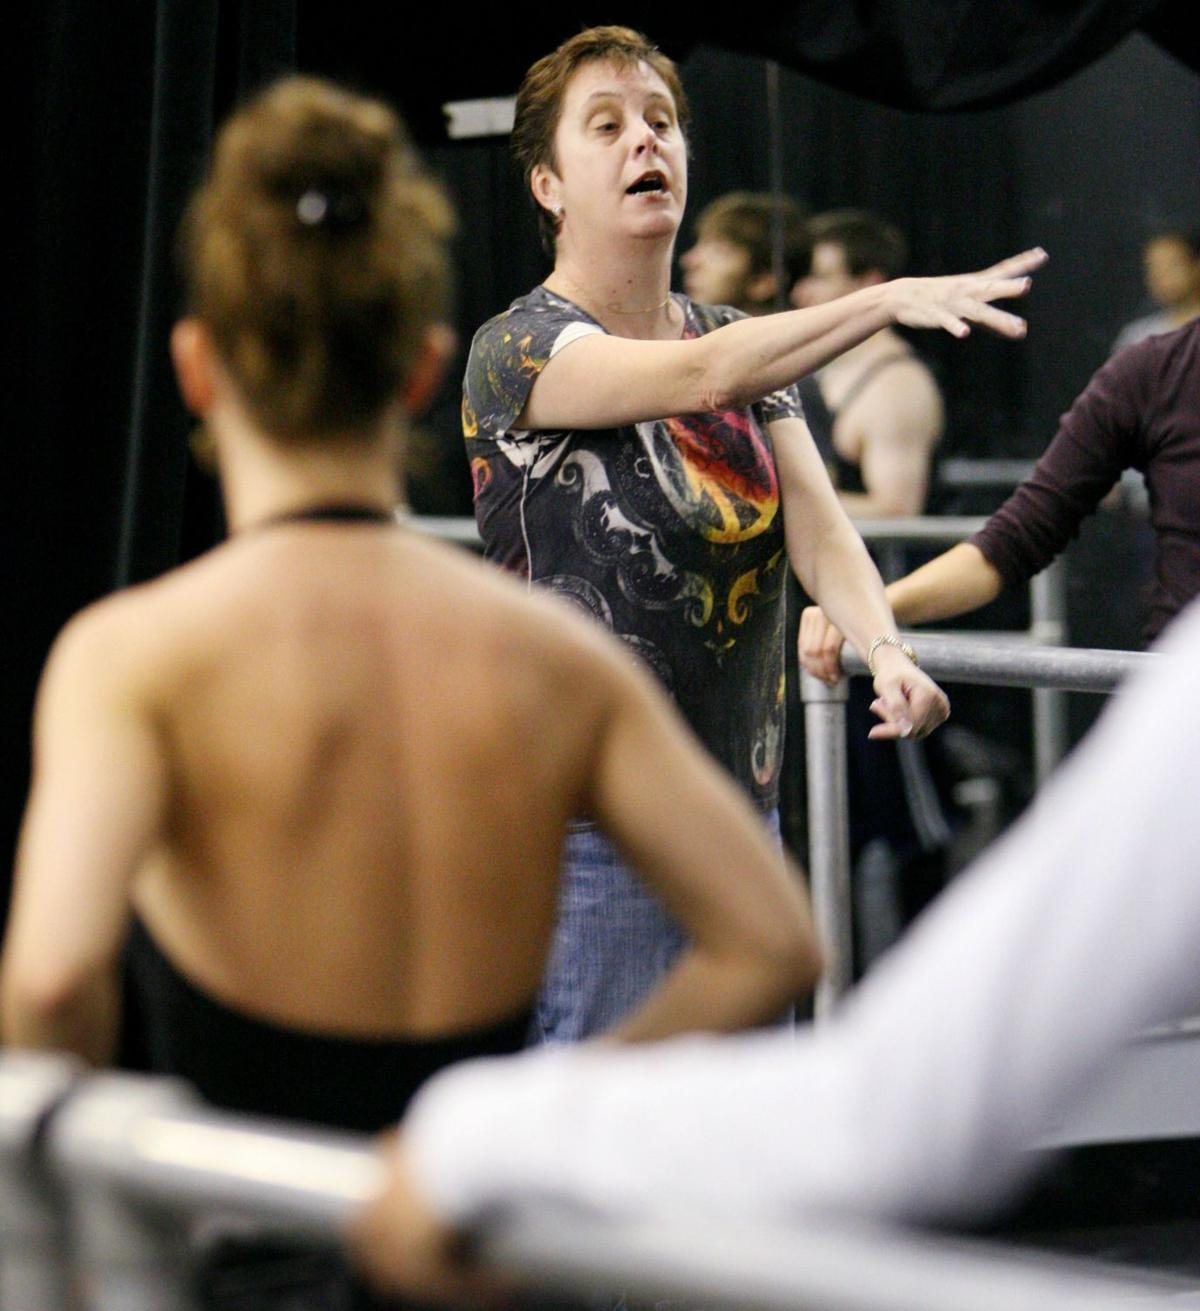 Chas. Ballet: Email was slander Lawsuit claims anonymous critic delivered 'disparaging remarks'